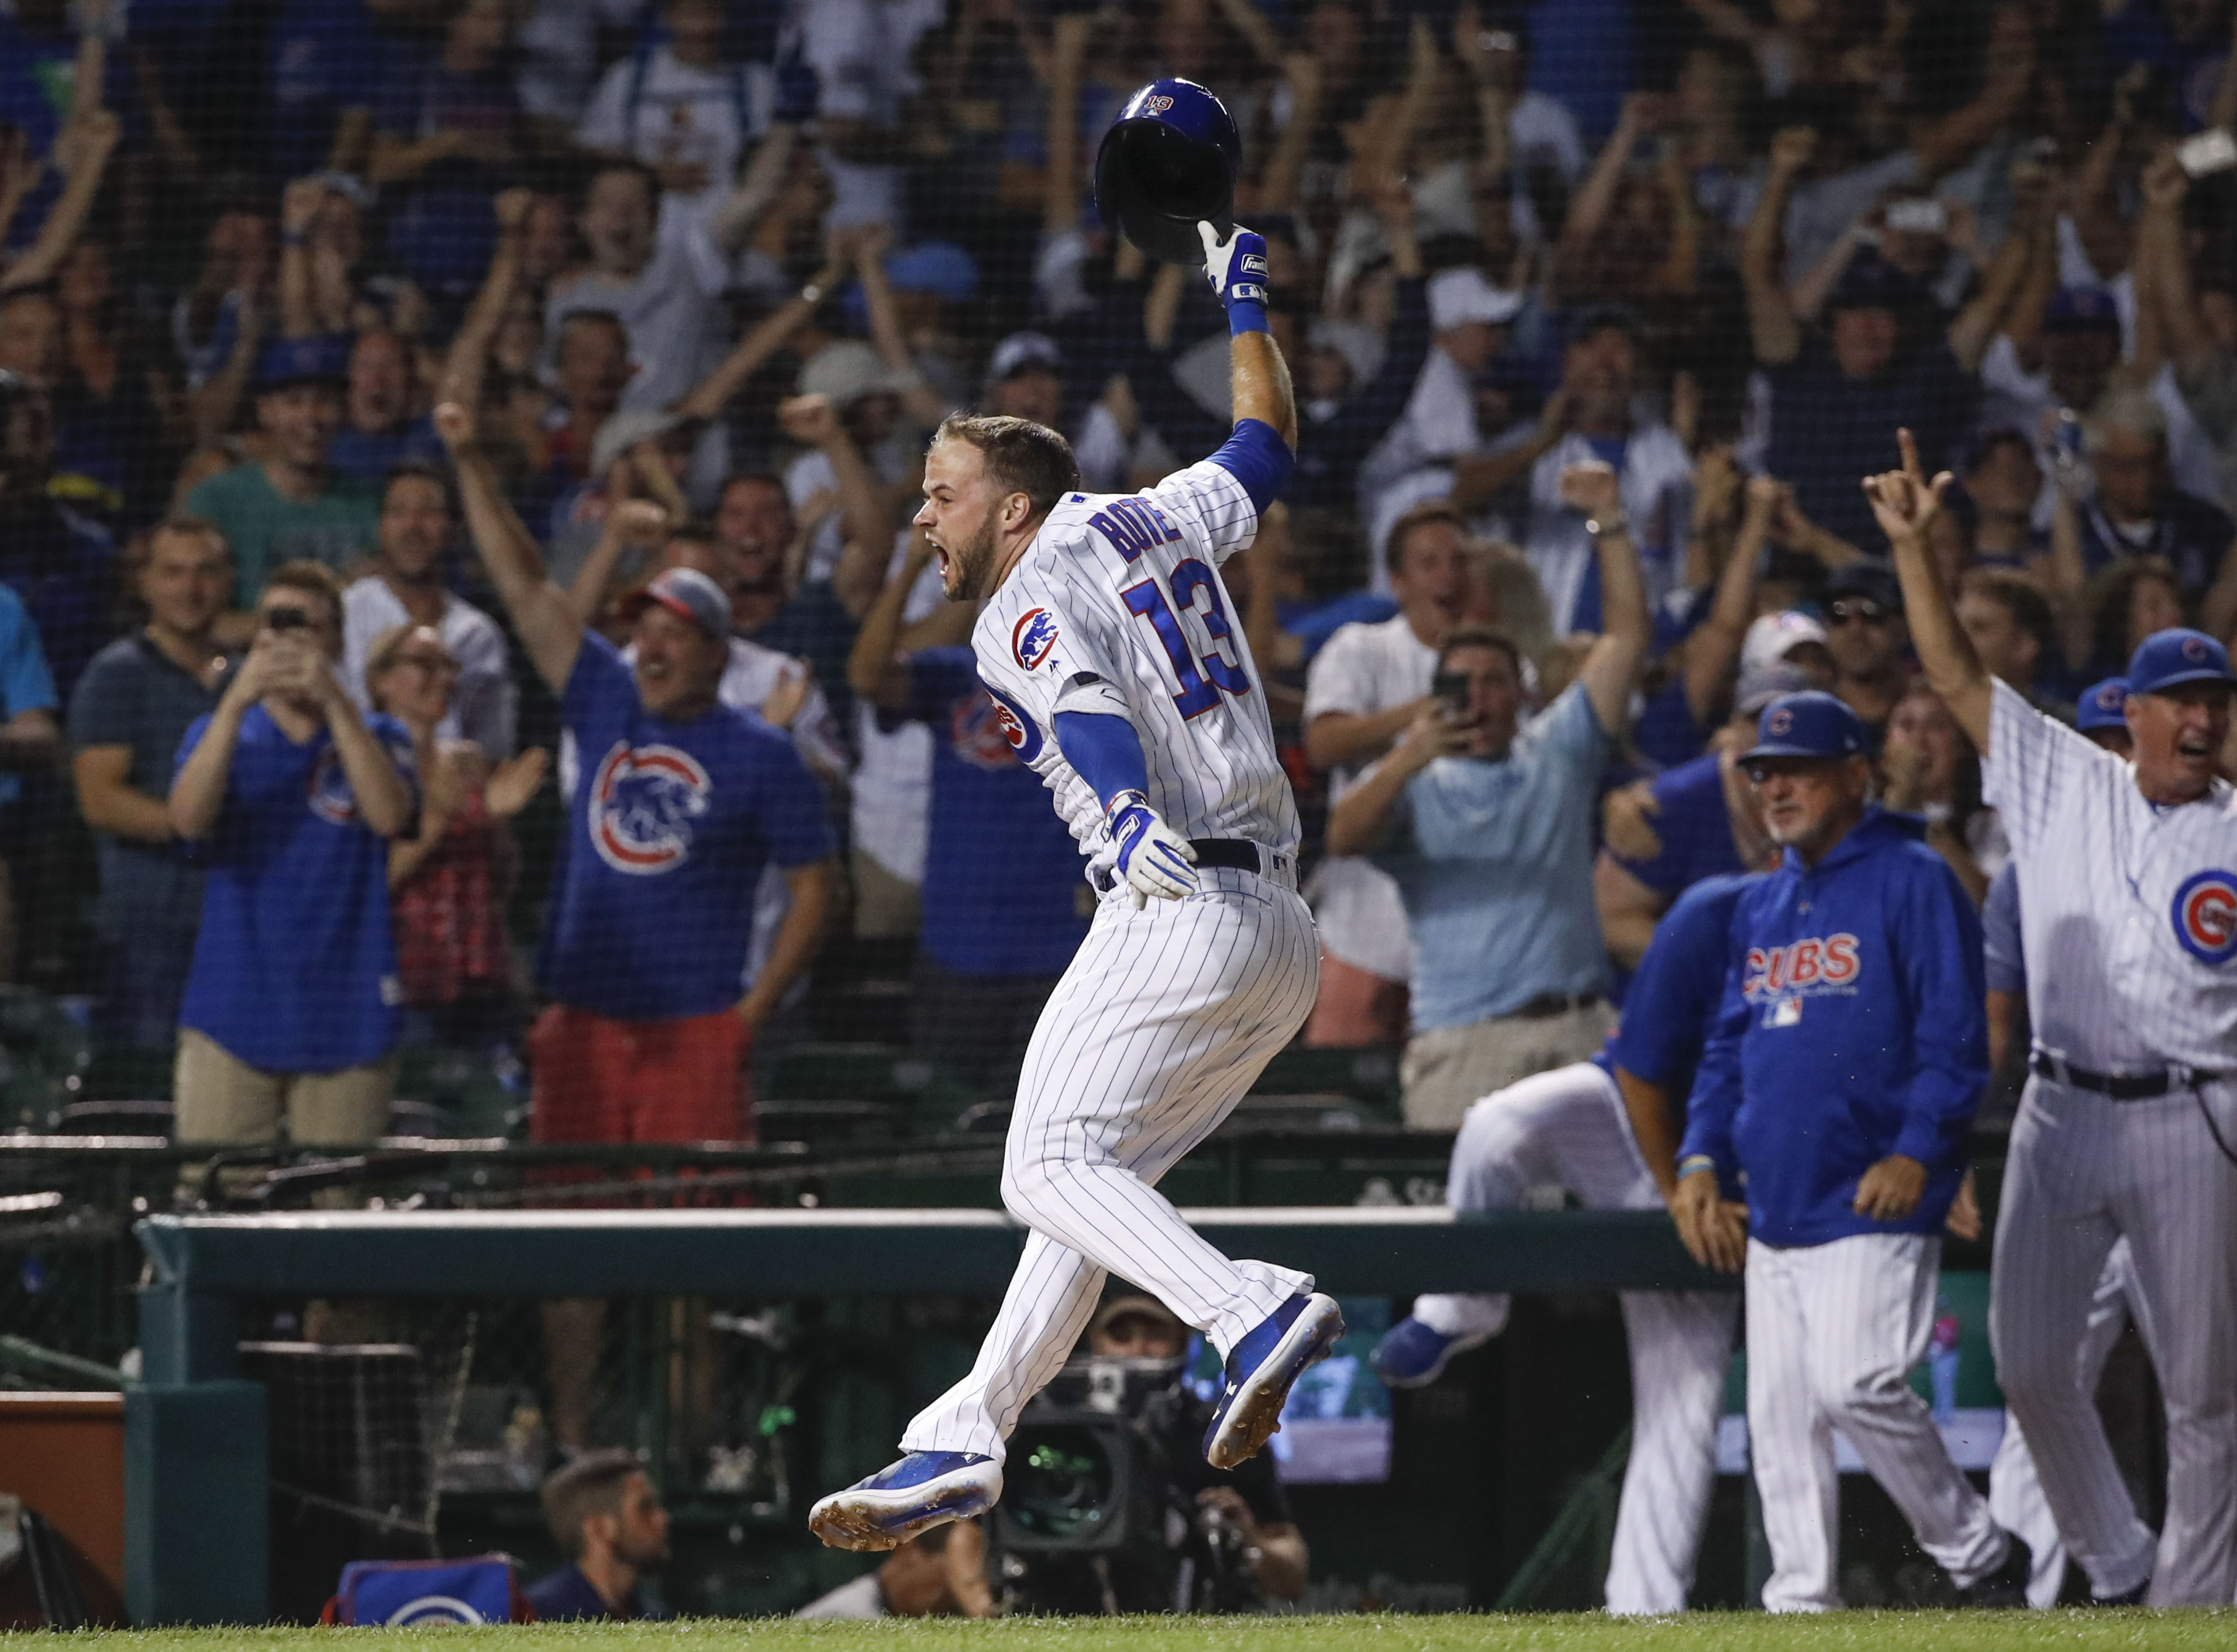 David Bote crushes walk-off grand slam to lift Cubs over Nationals